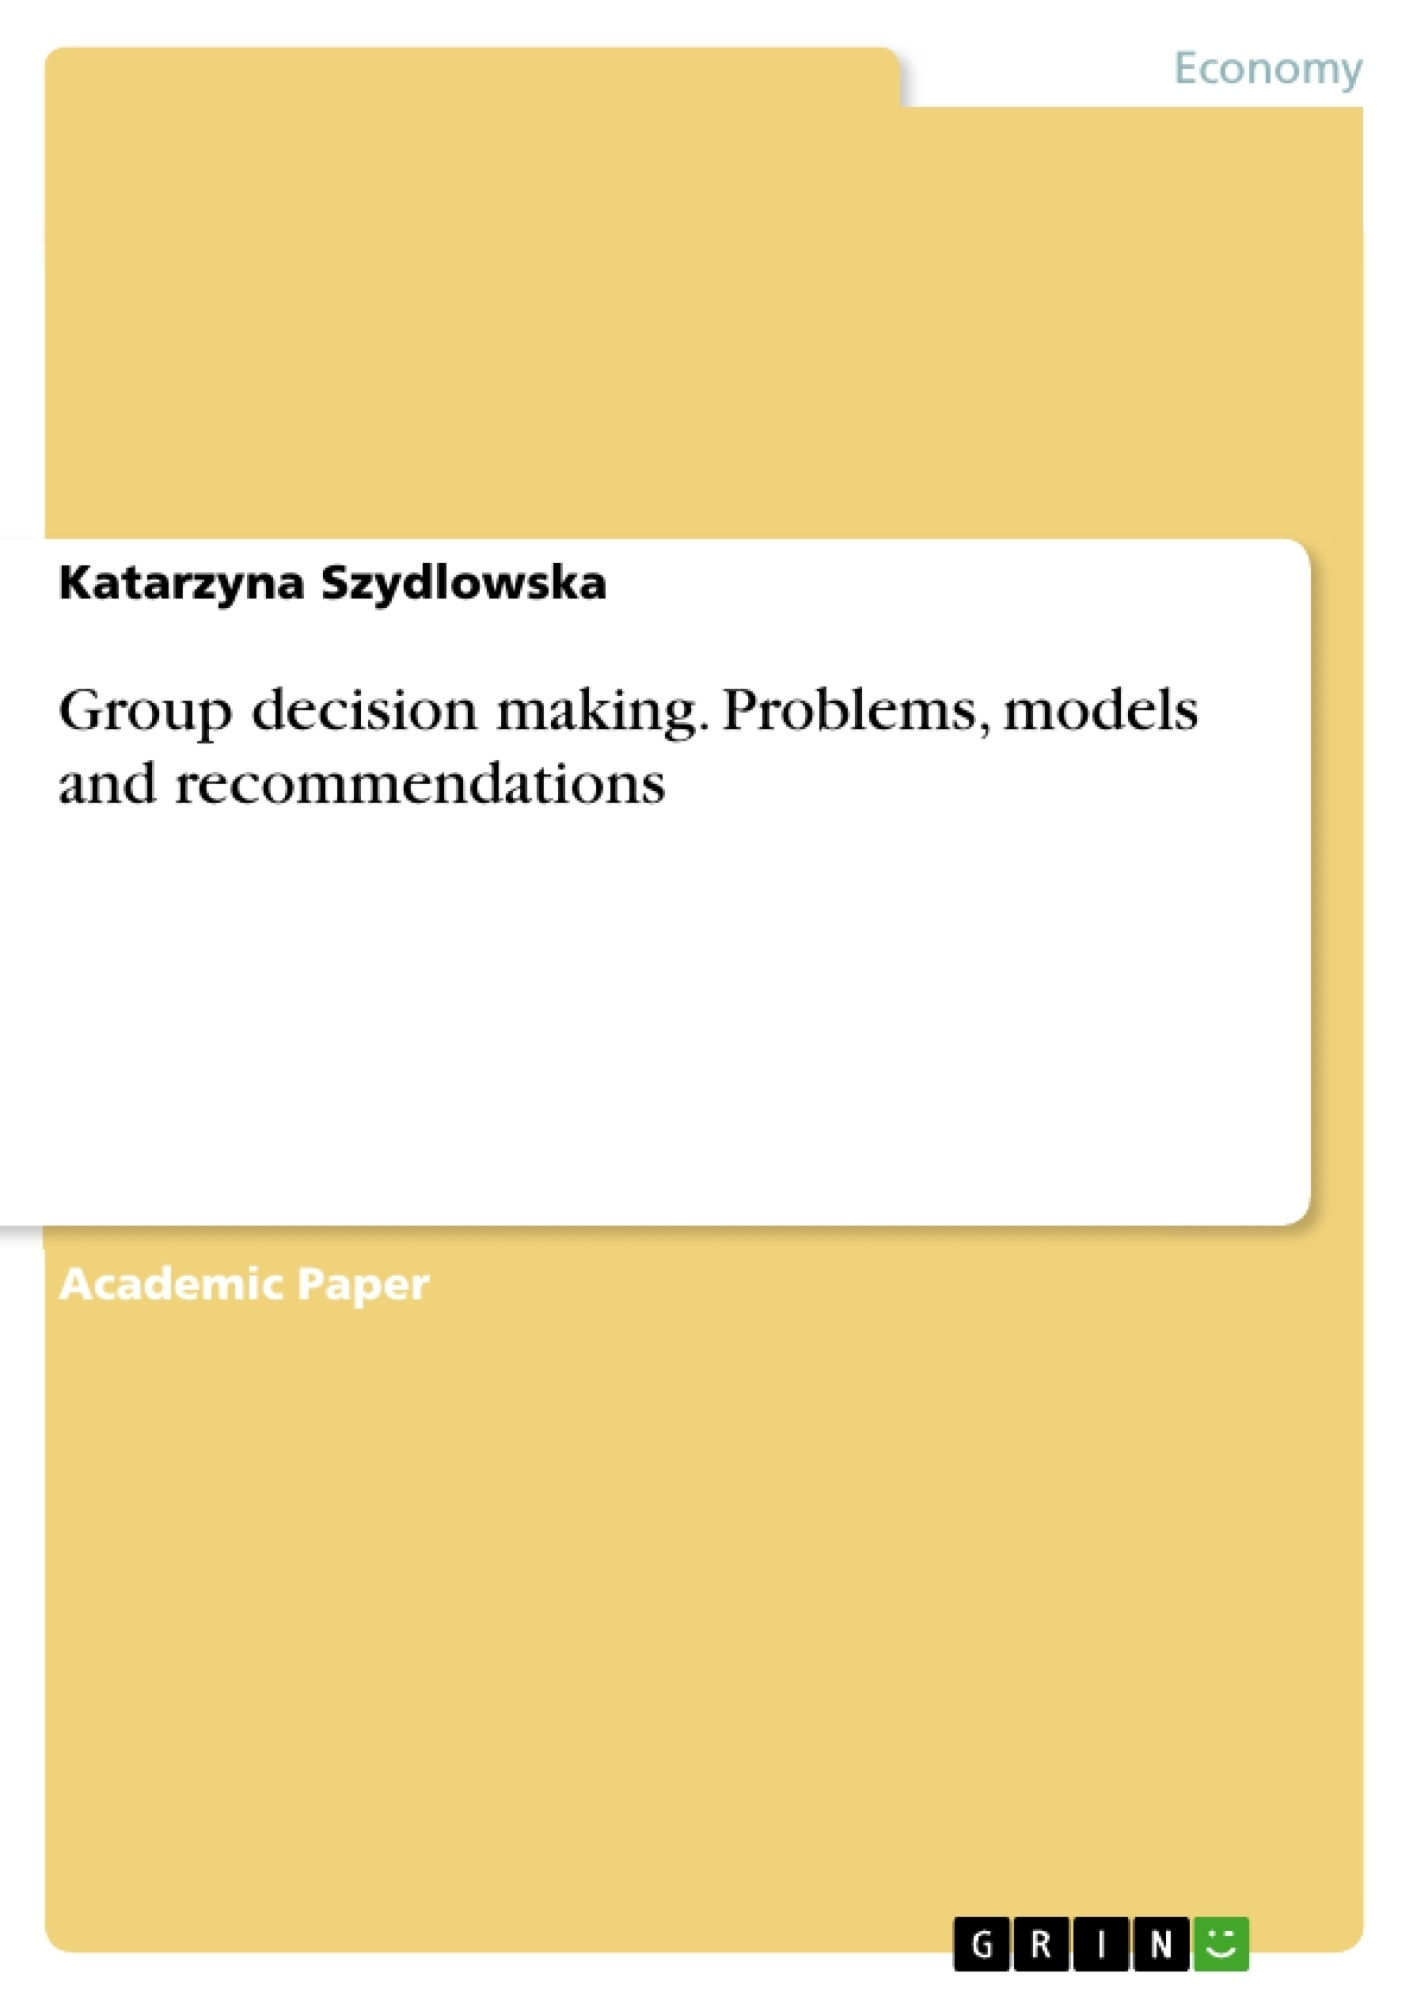 Title: Group decision making. Problems, models and recommendations